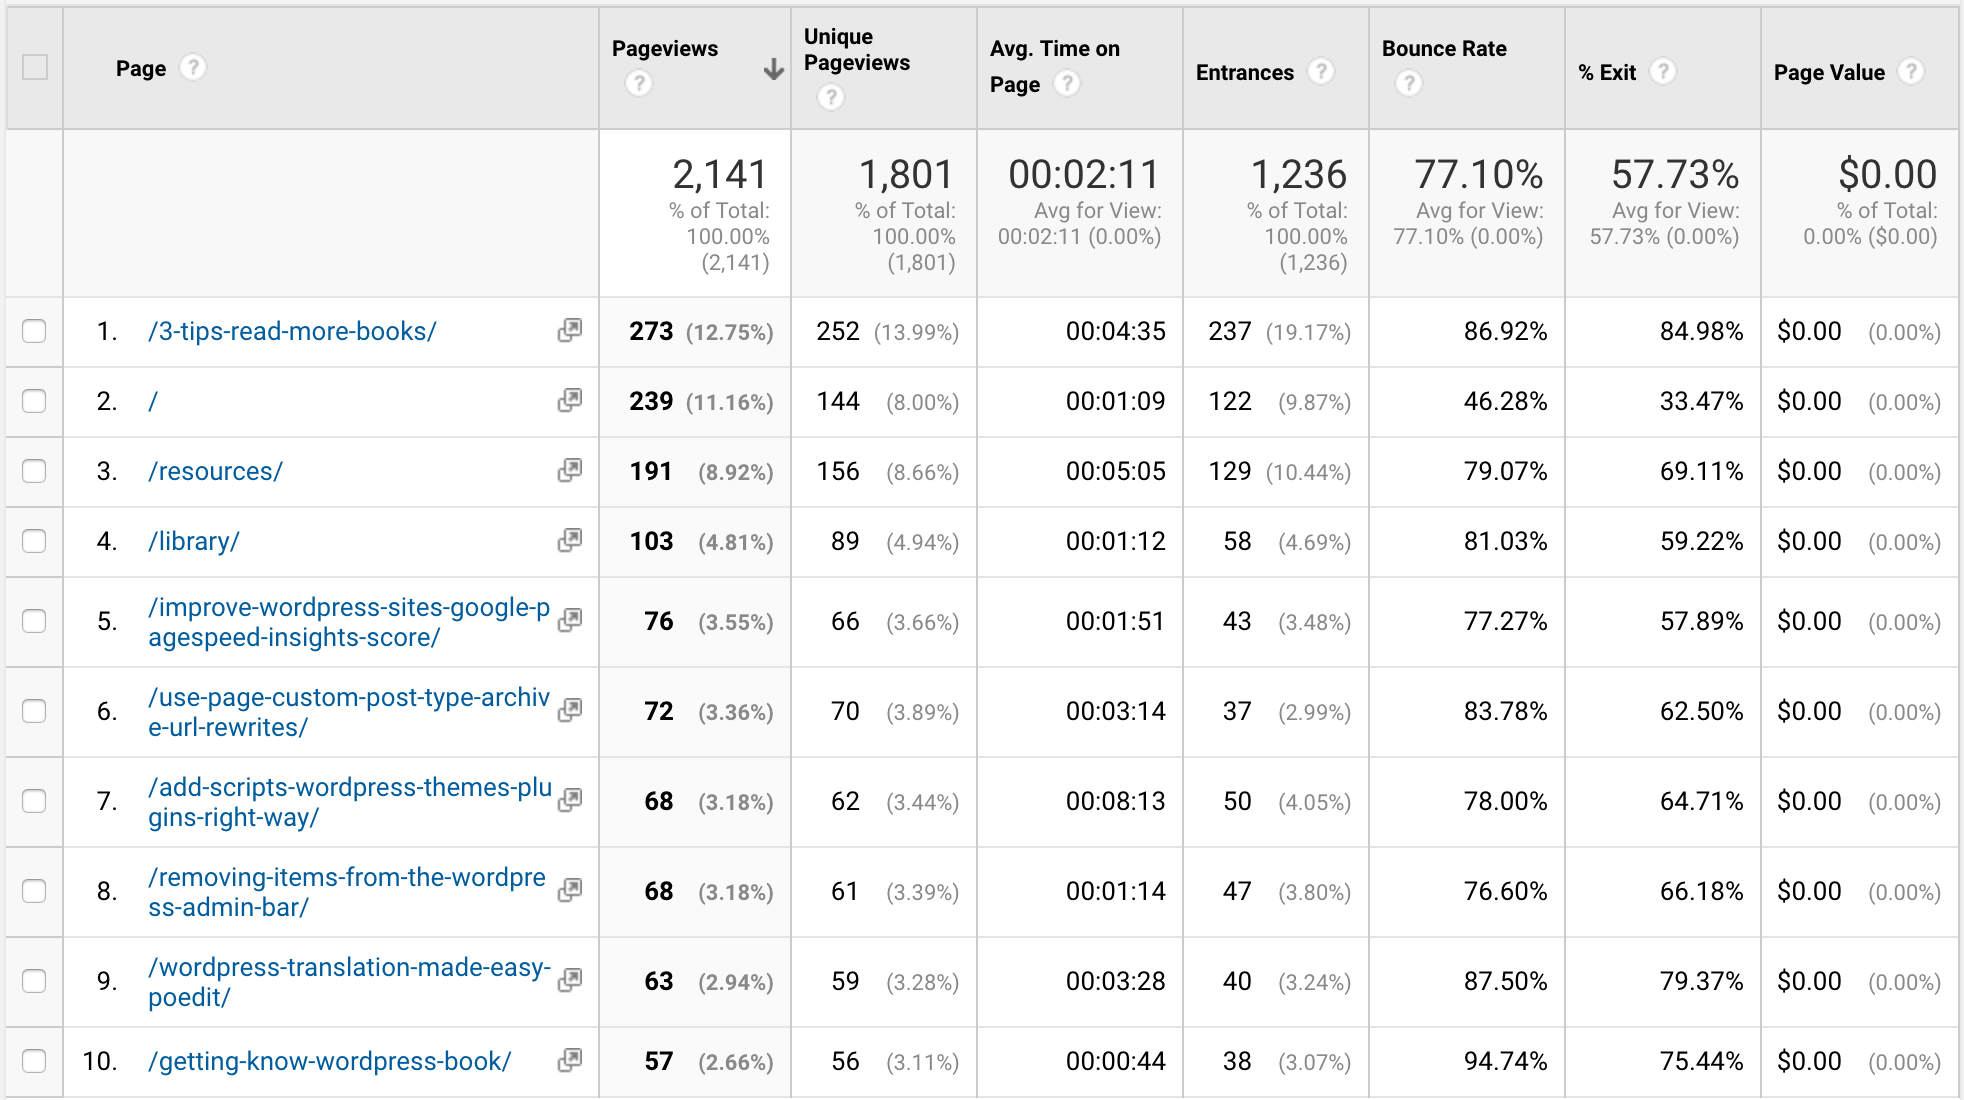 A Google Analytics report showing monthly pageviews for JasonYingling.me